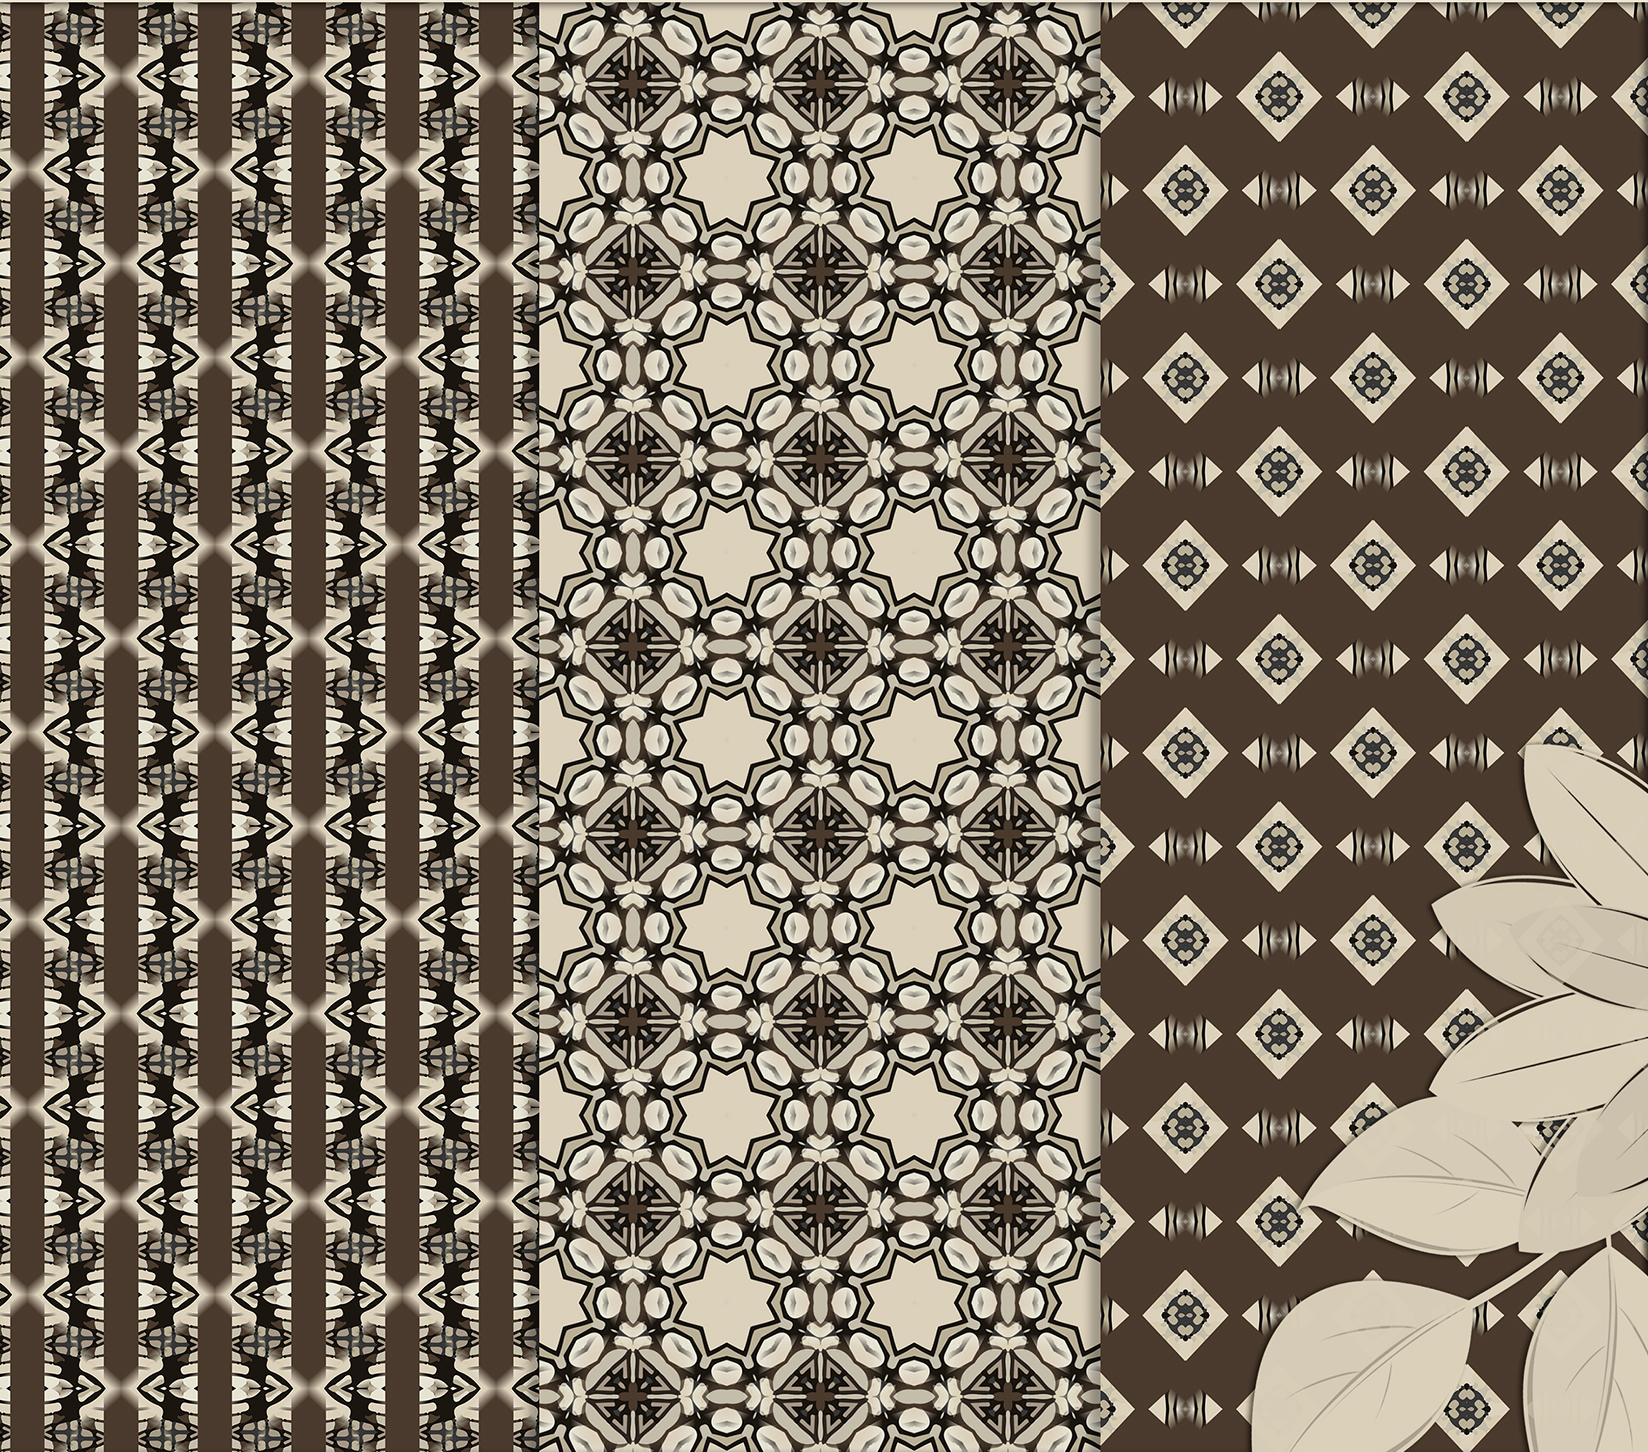 Brown-Gray abstract Digital Scrapbook Paper example image 5